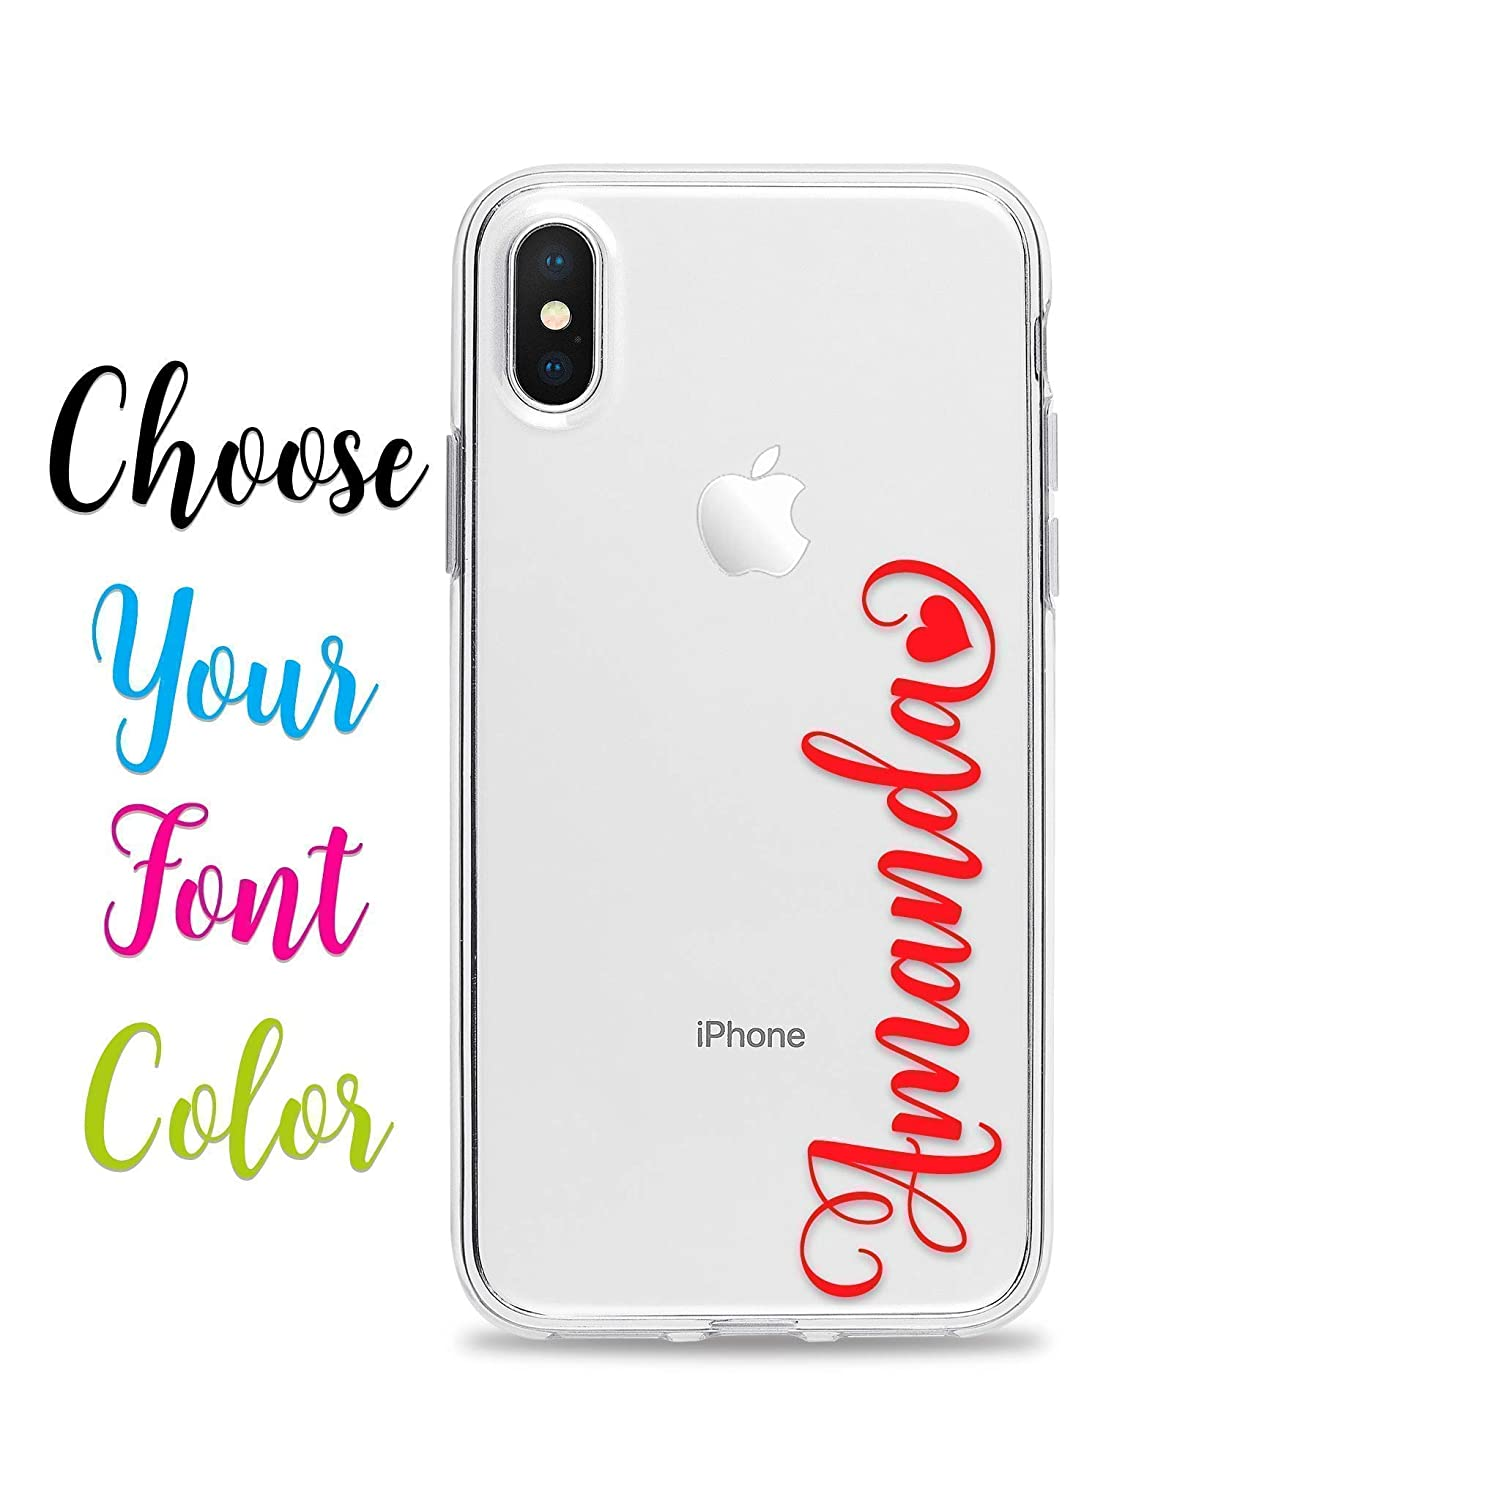 iPhone X Personalized Name Case for iPhone XS 10 8 Plus 7 6s 6 SE 5s 5 Samsung Galaxy S9 S8 S7 edge S6 Slim Flexible Clear TPU Rubber